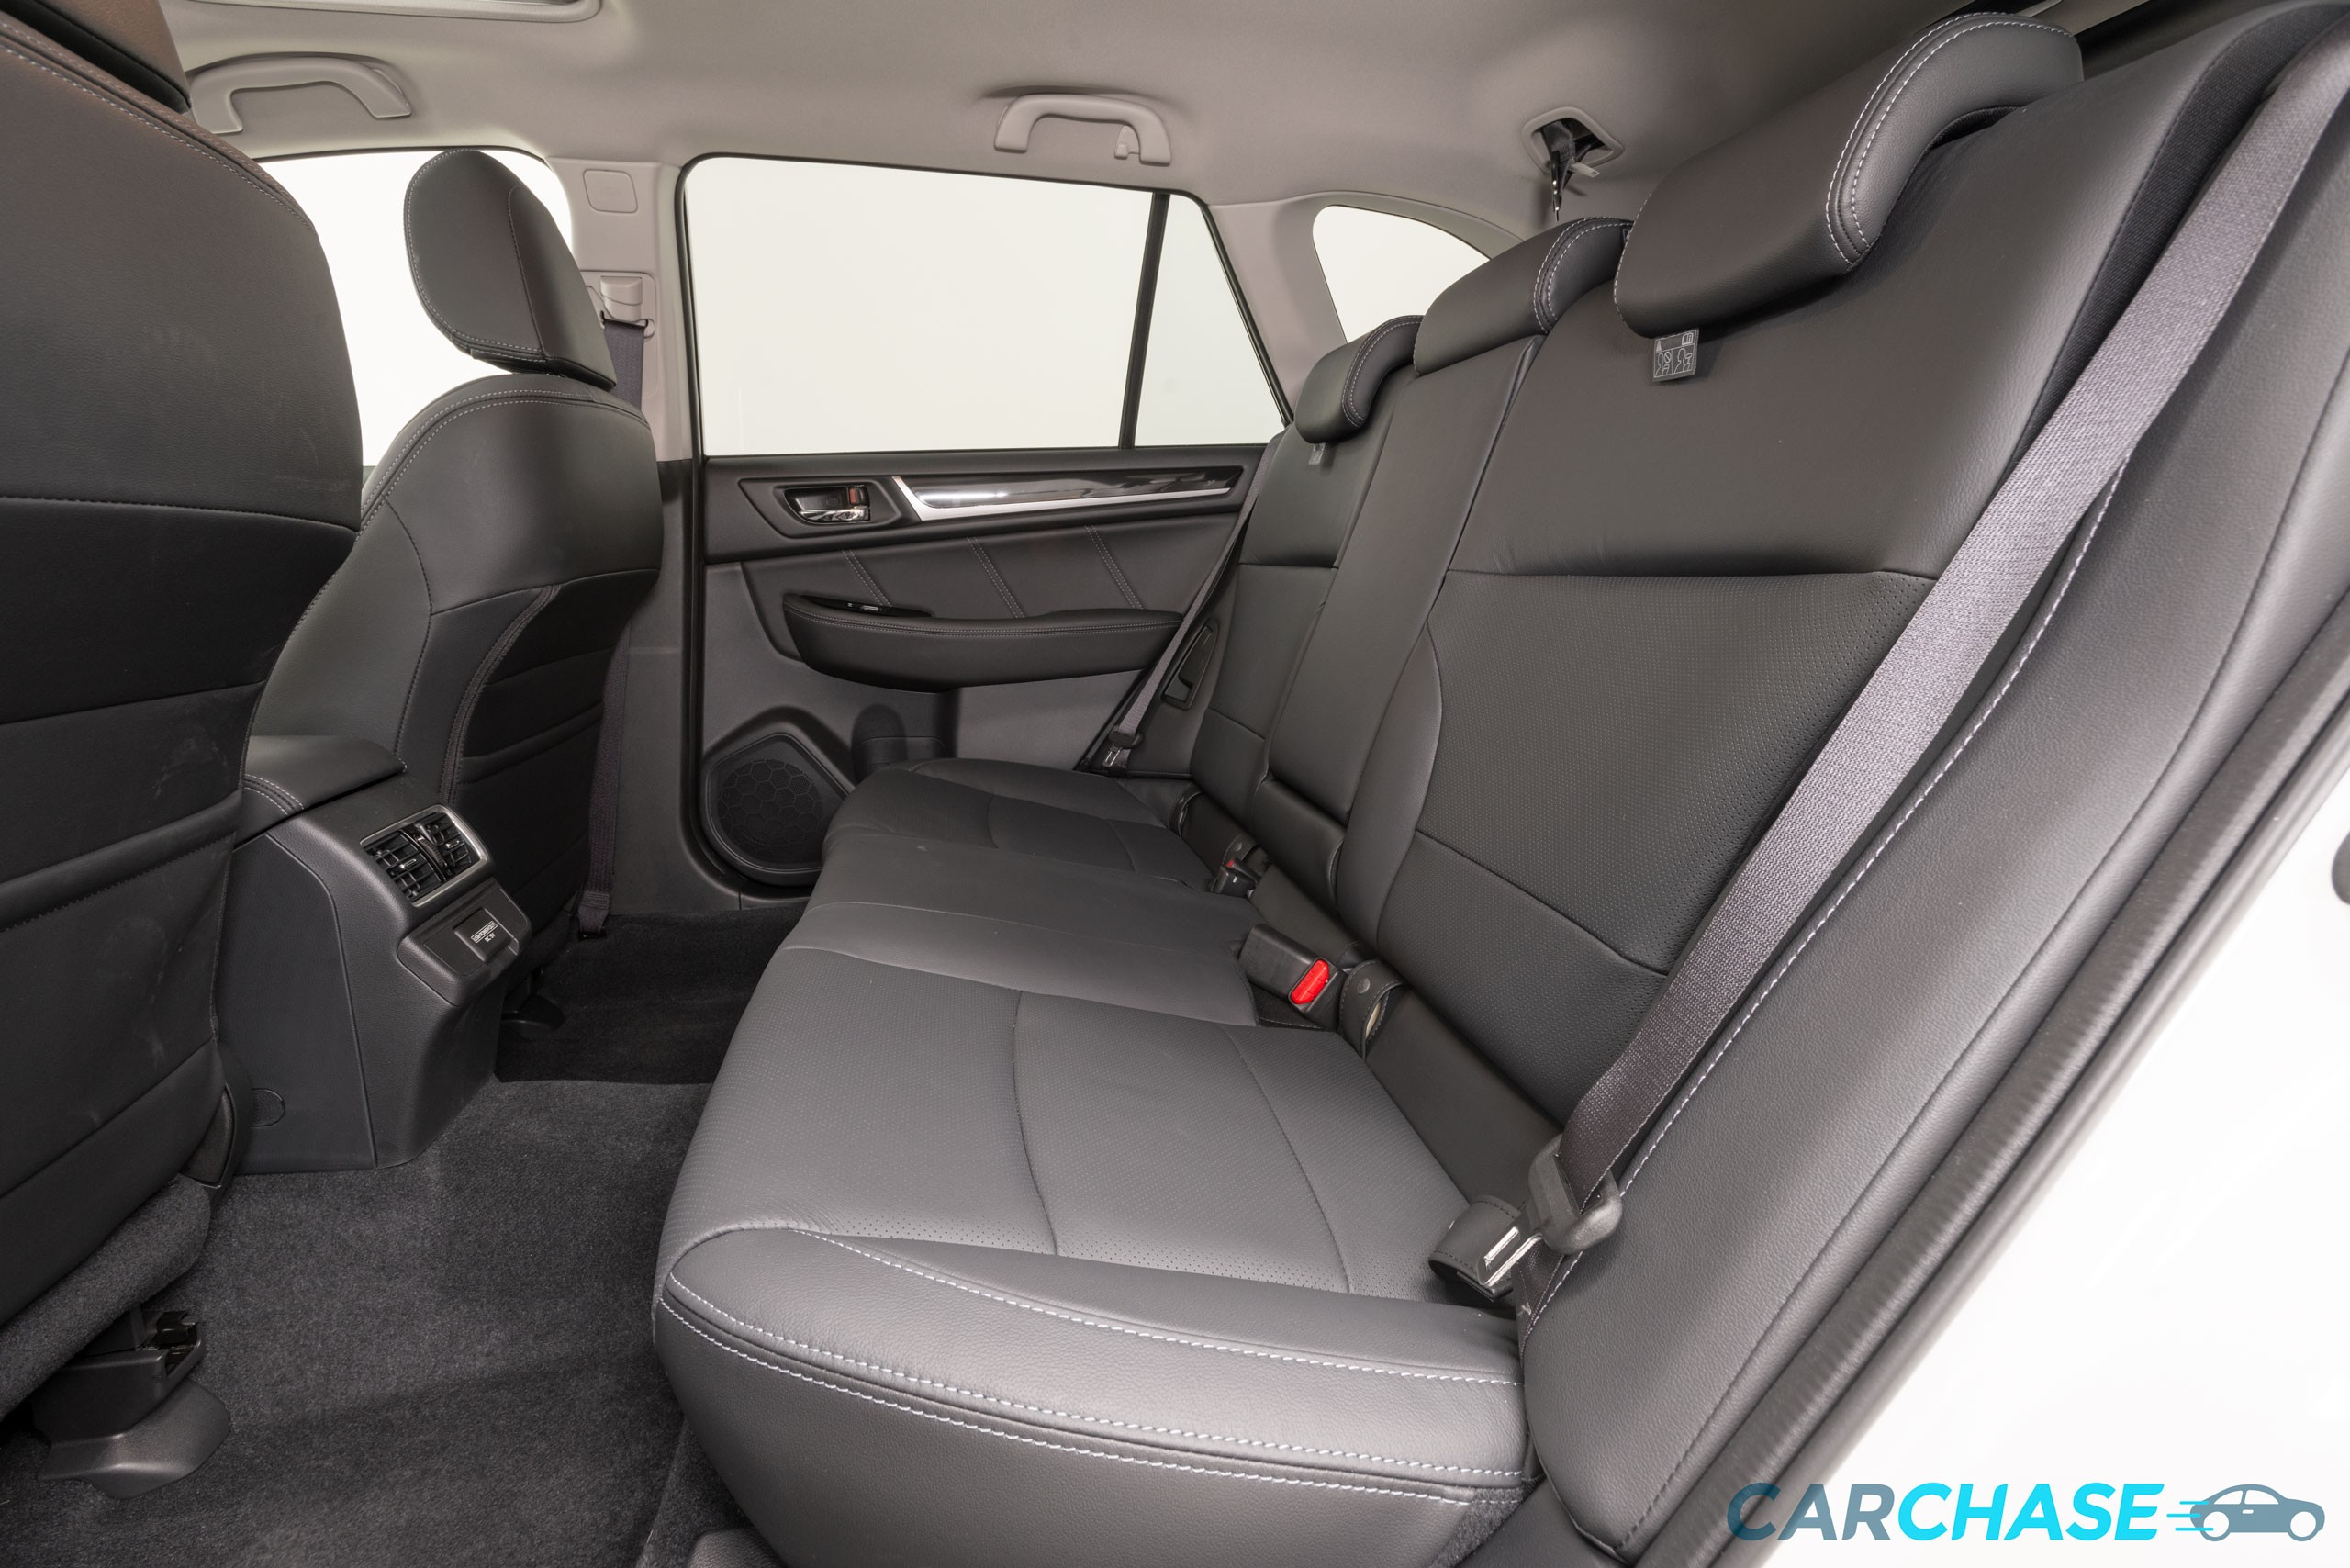 Image of passenger rear profile of 2018 Subaru Outback 2.5i Premium